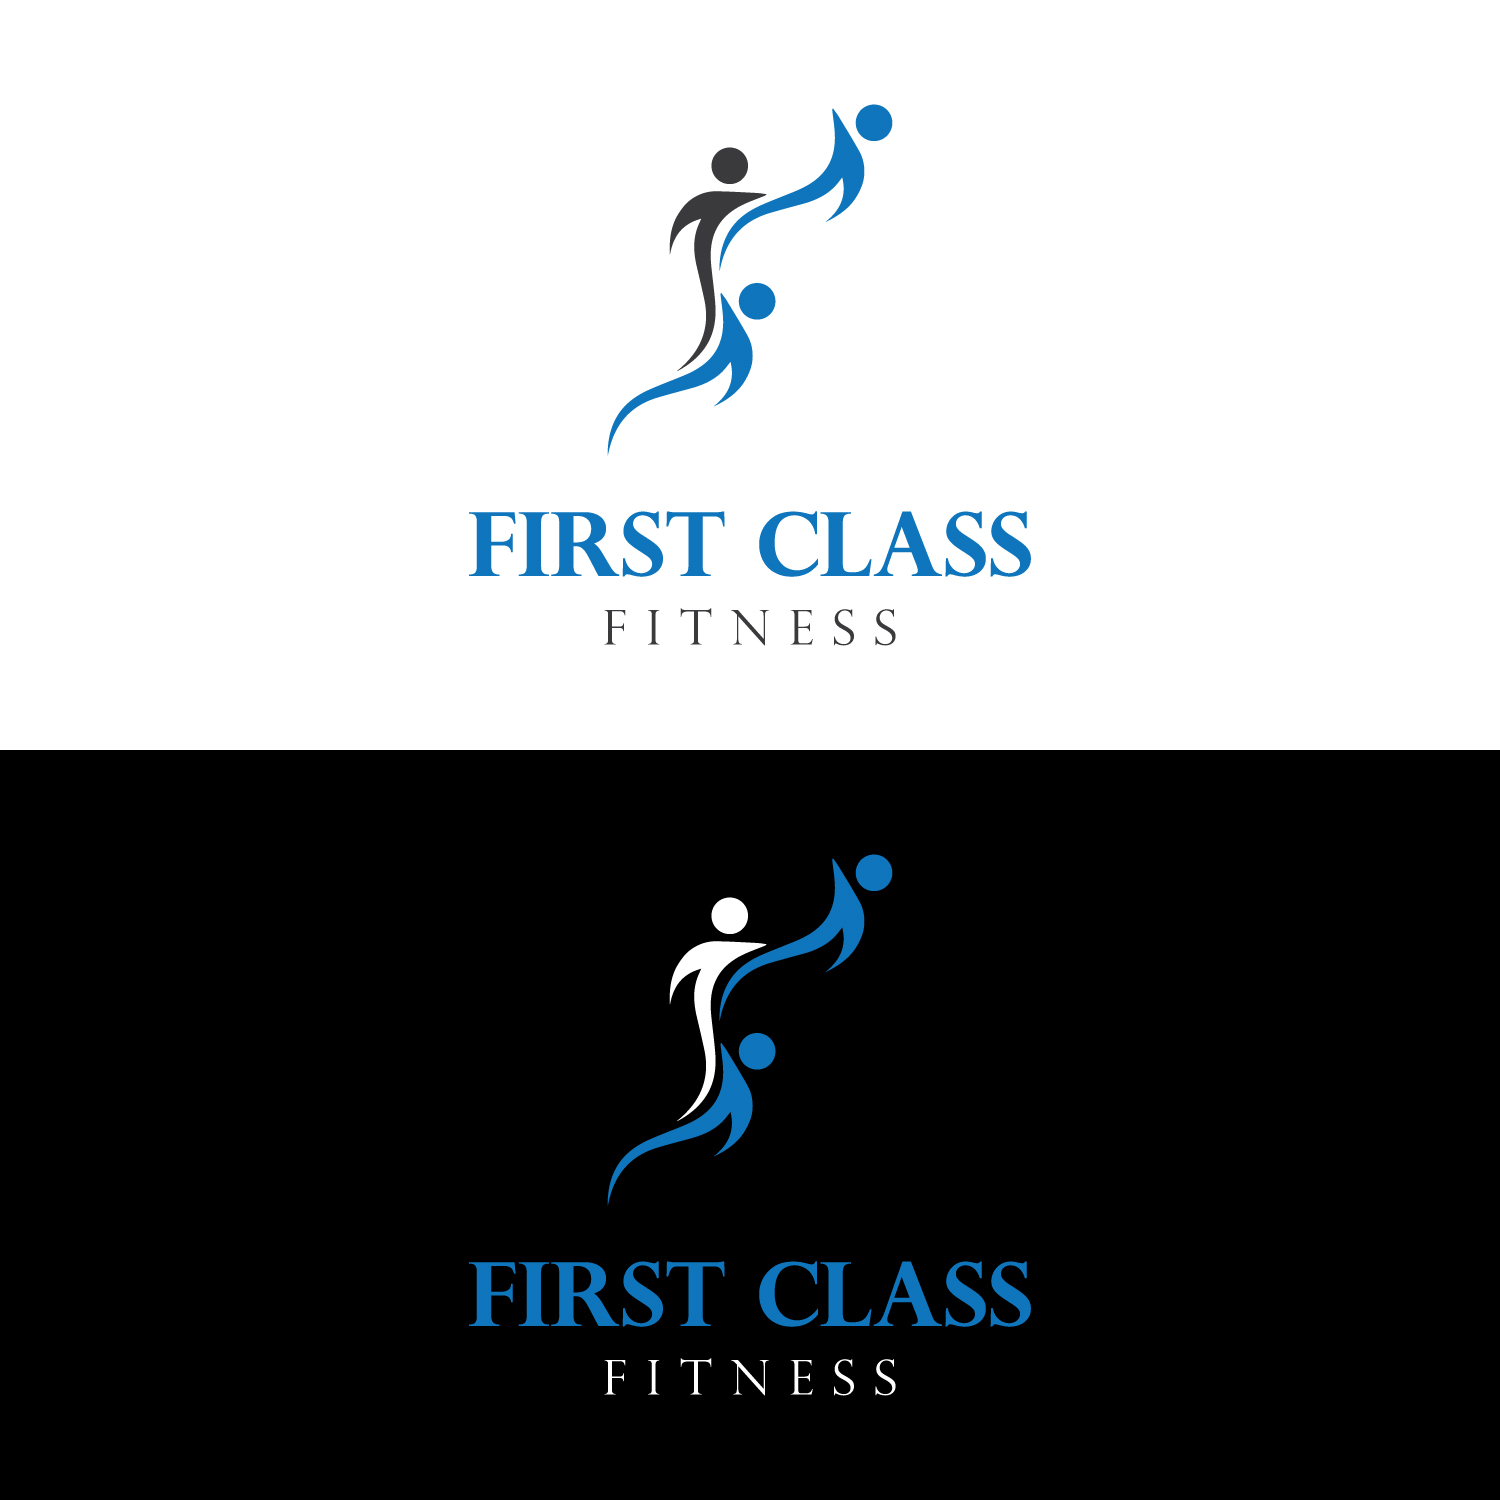 Serious Modern Fitness Logo Design For First Class Fitness By Mediaproductionart Design 12542085